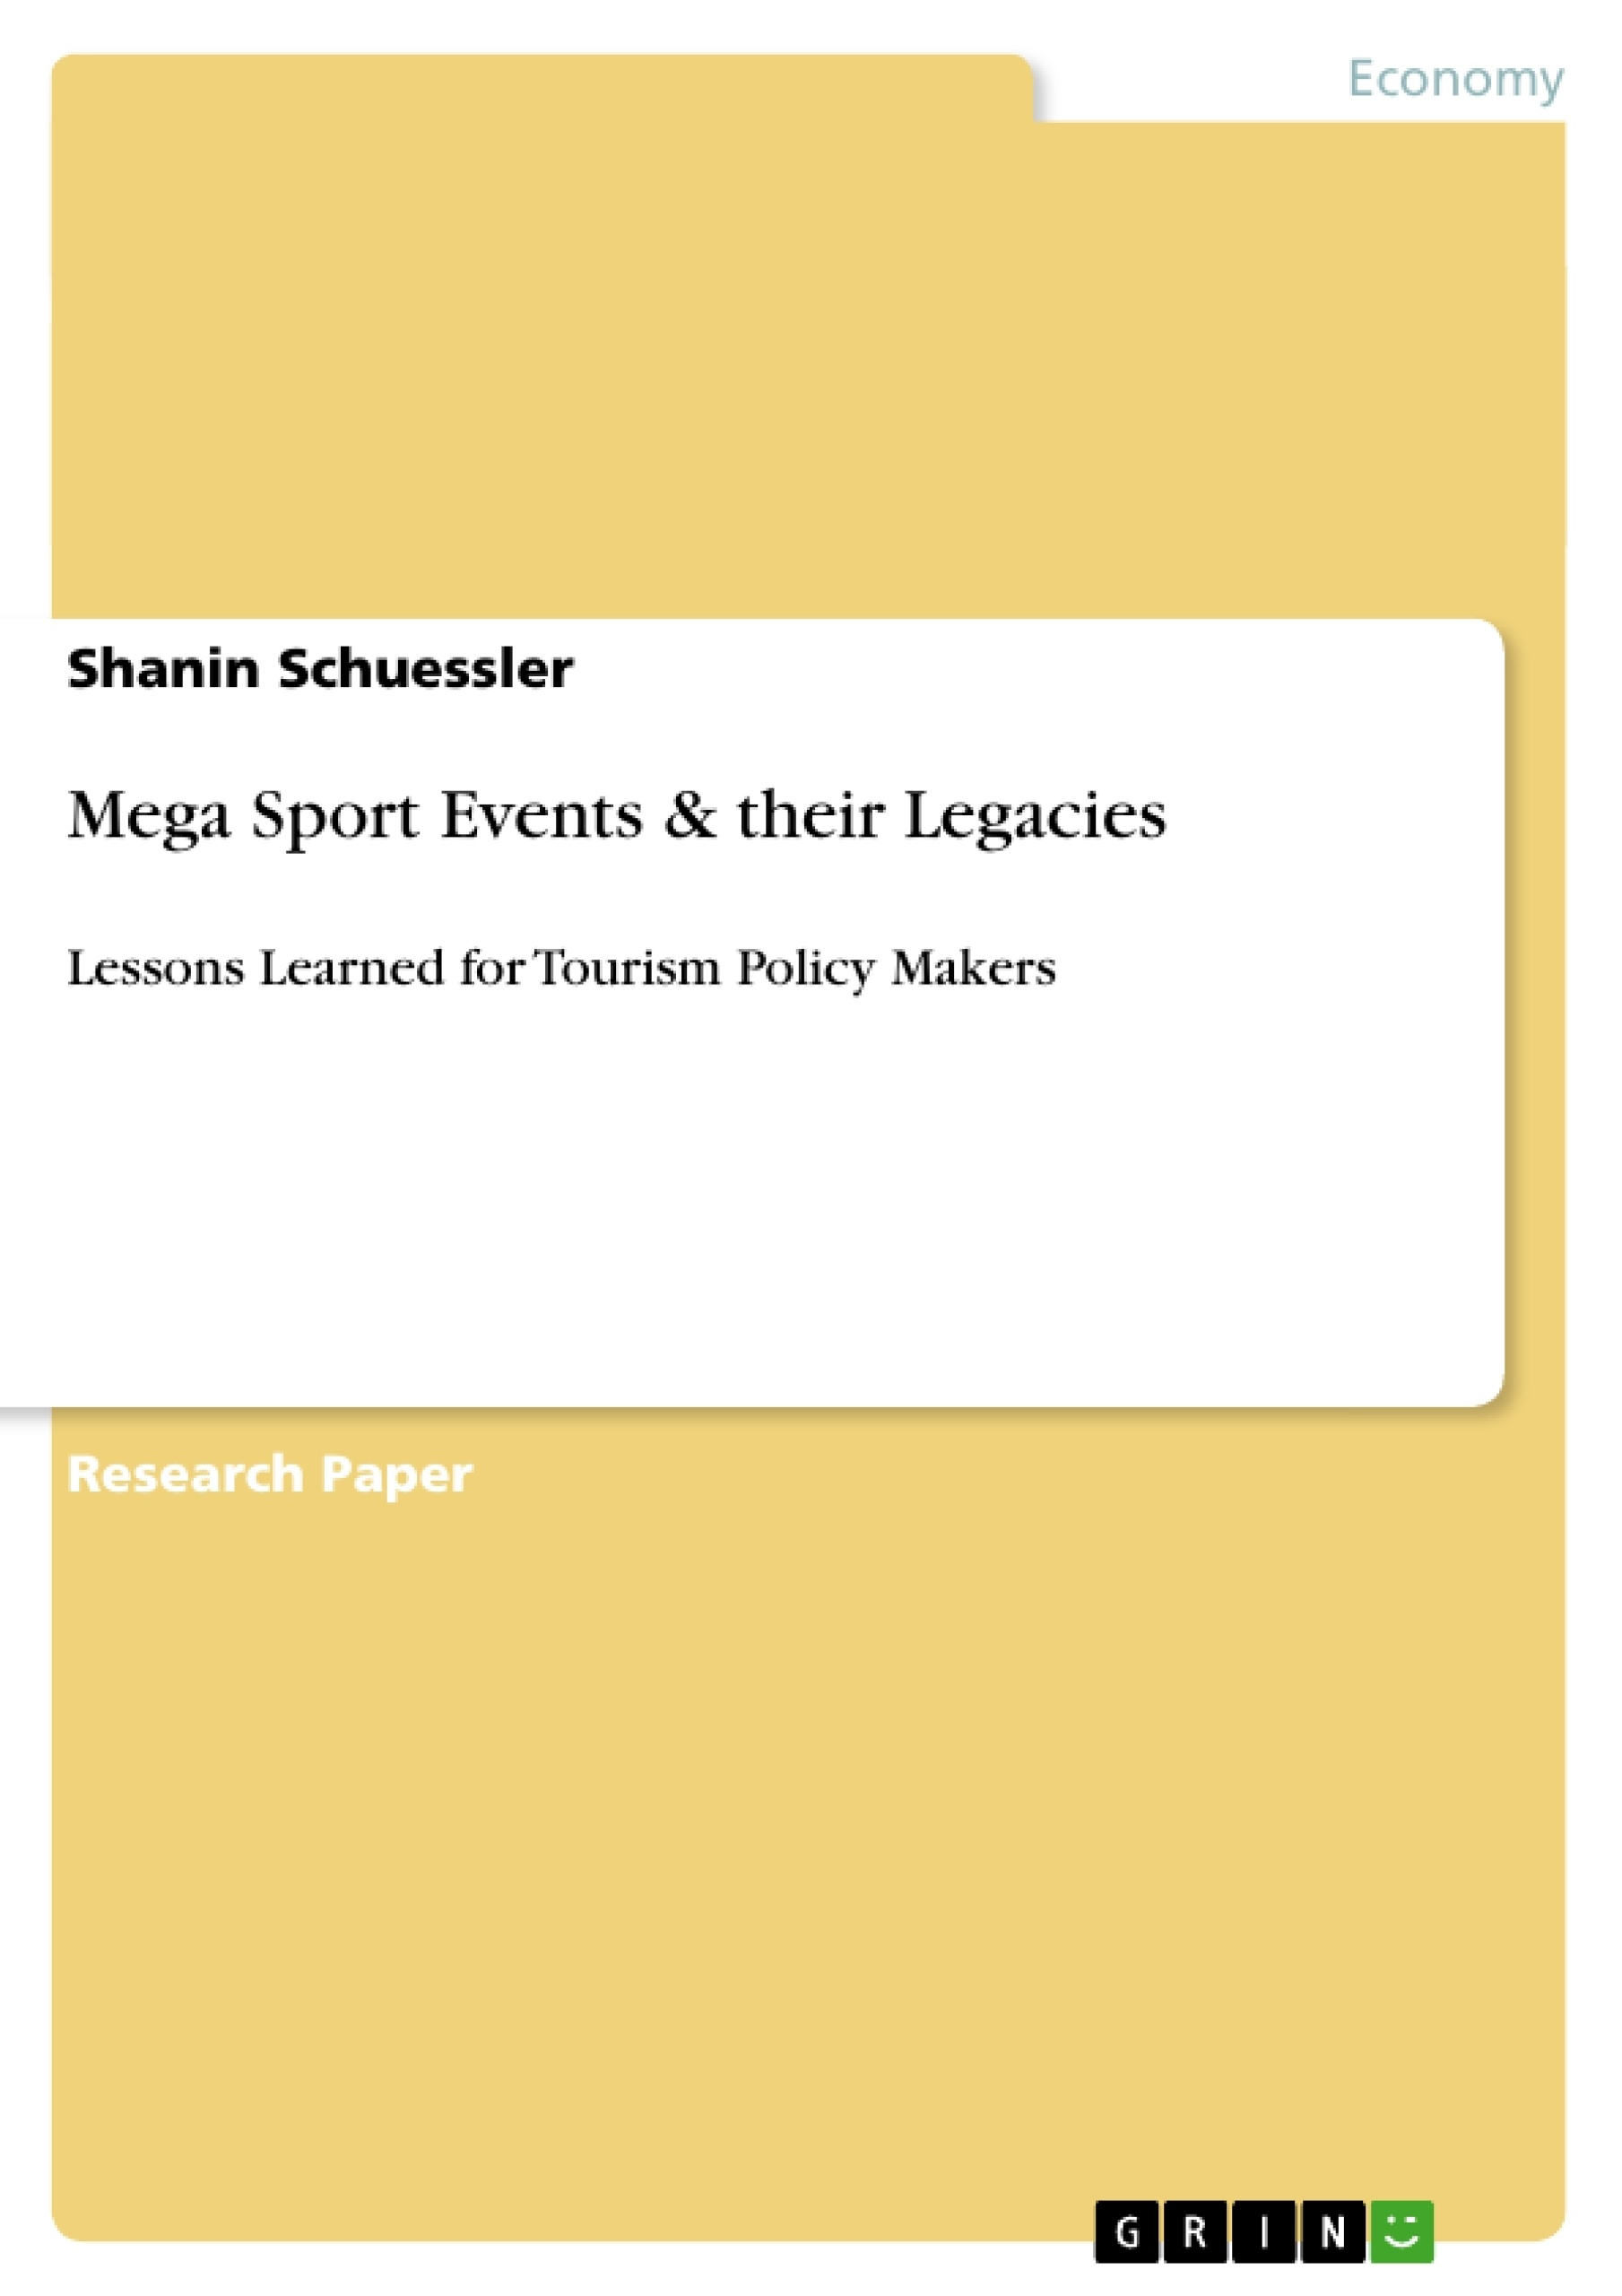 Title: Mega Sport Events & their Legacies